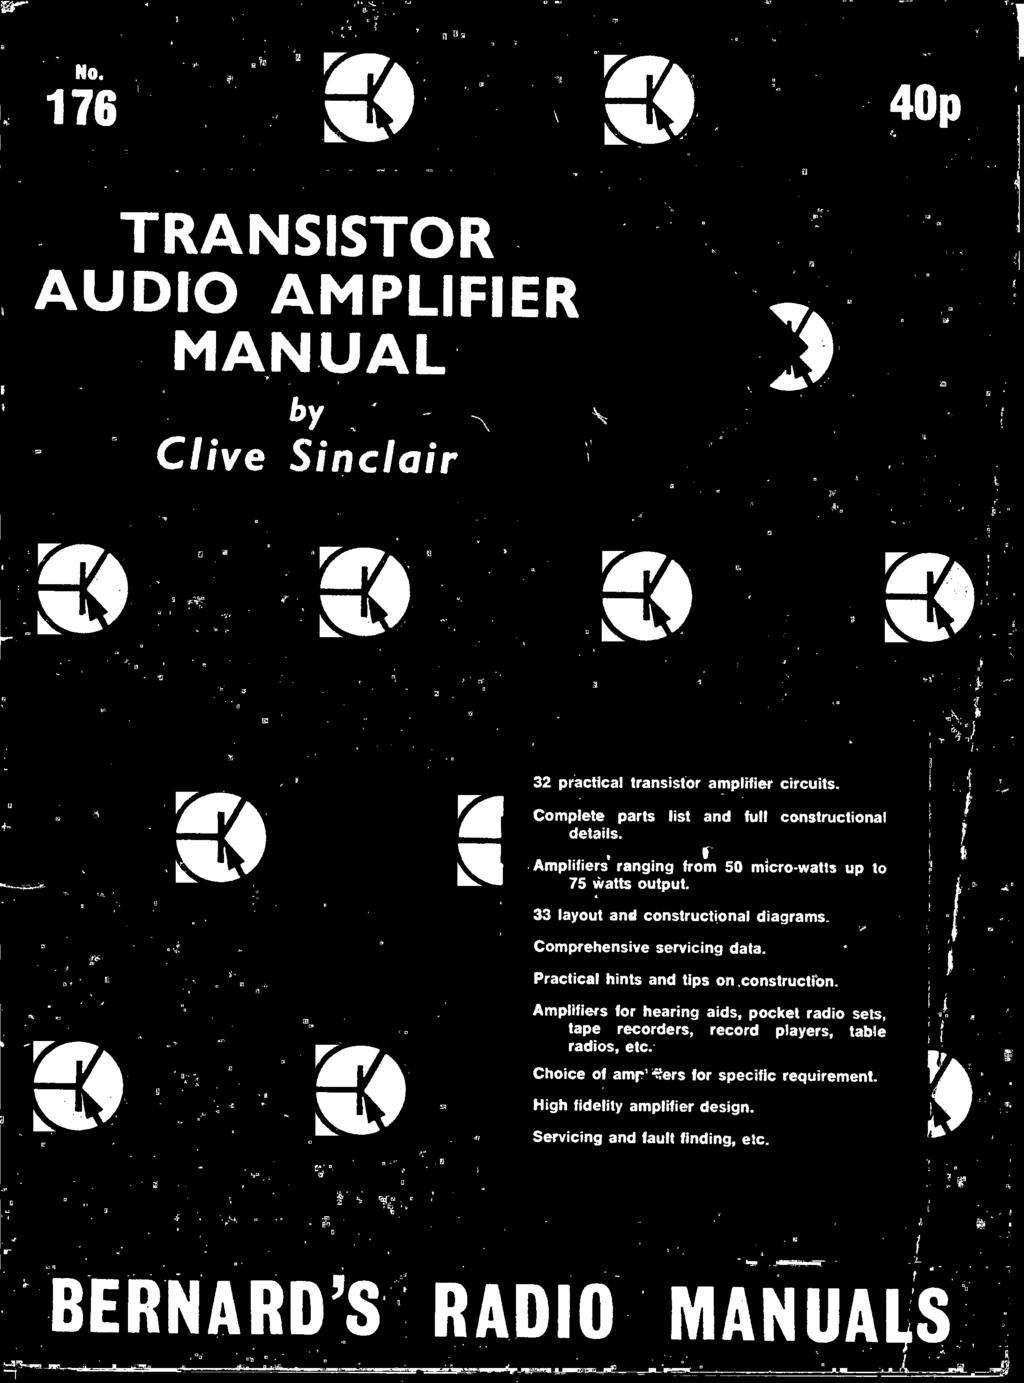 4e0 Manual Audio Amplifier Bernards Radio Transistor Manuals Clive Hearing Aids Circuit Wiring Diagram Practical Hints And Tips On Construction